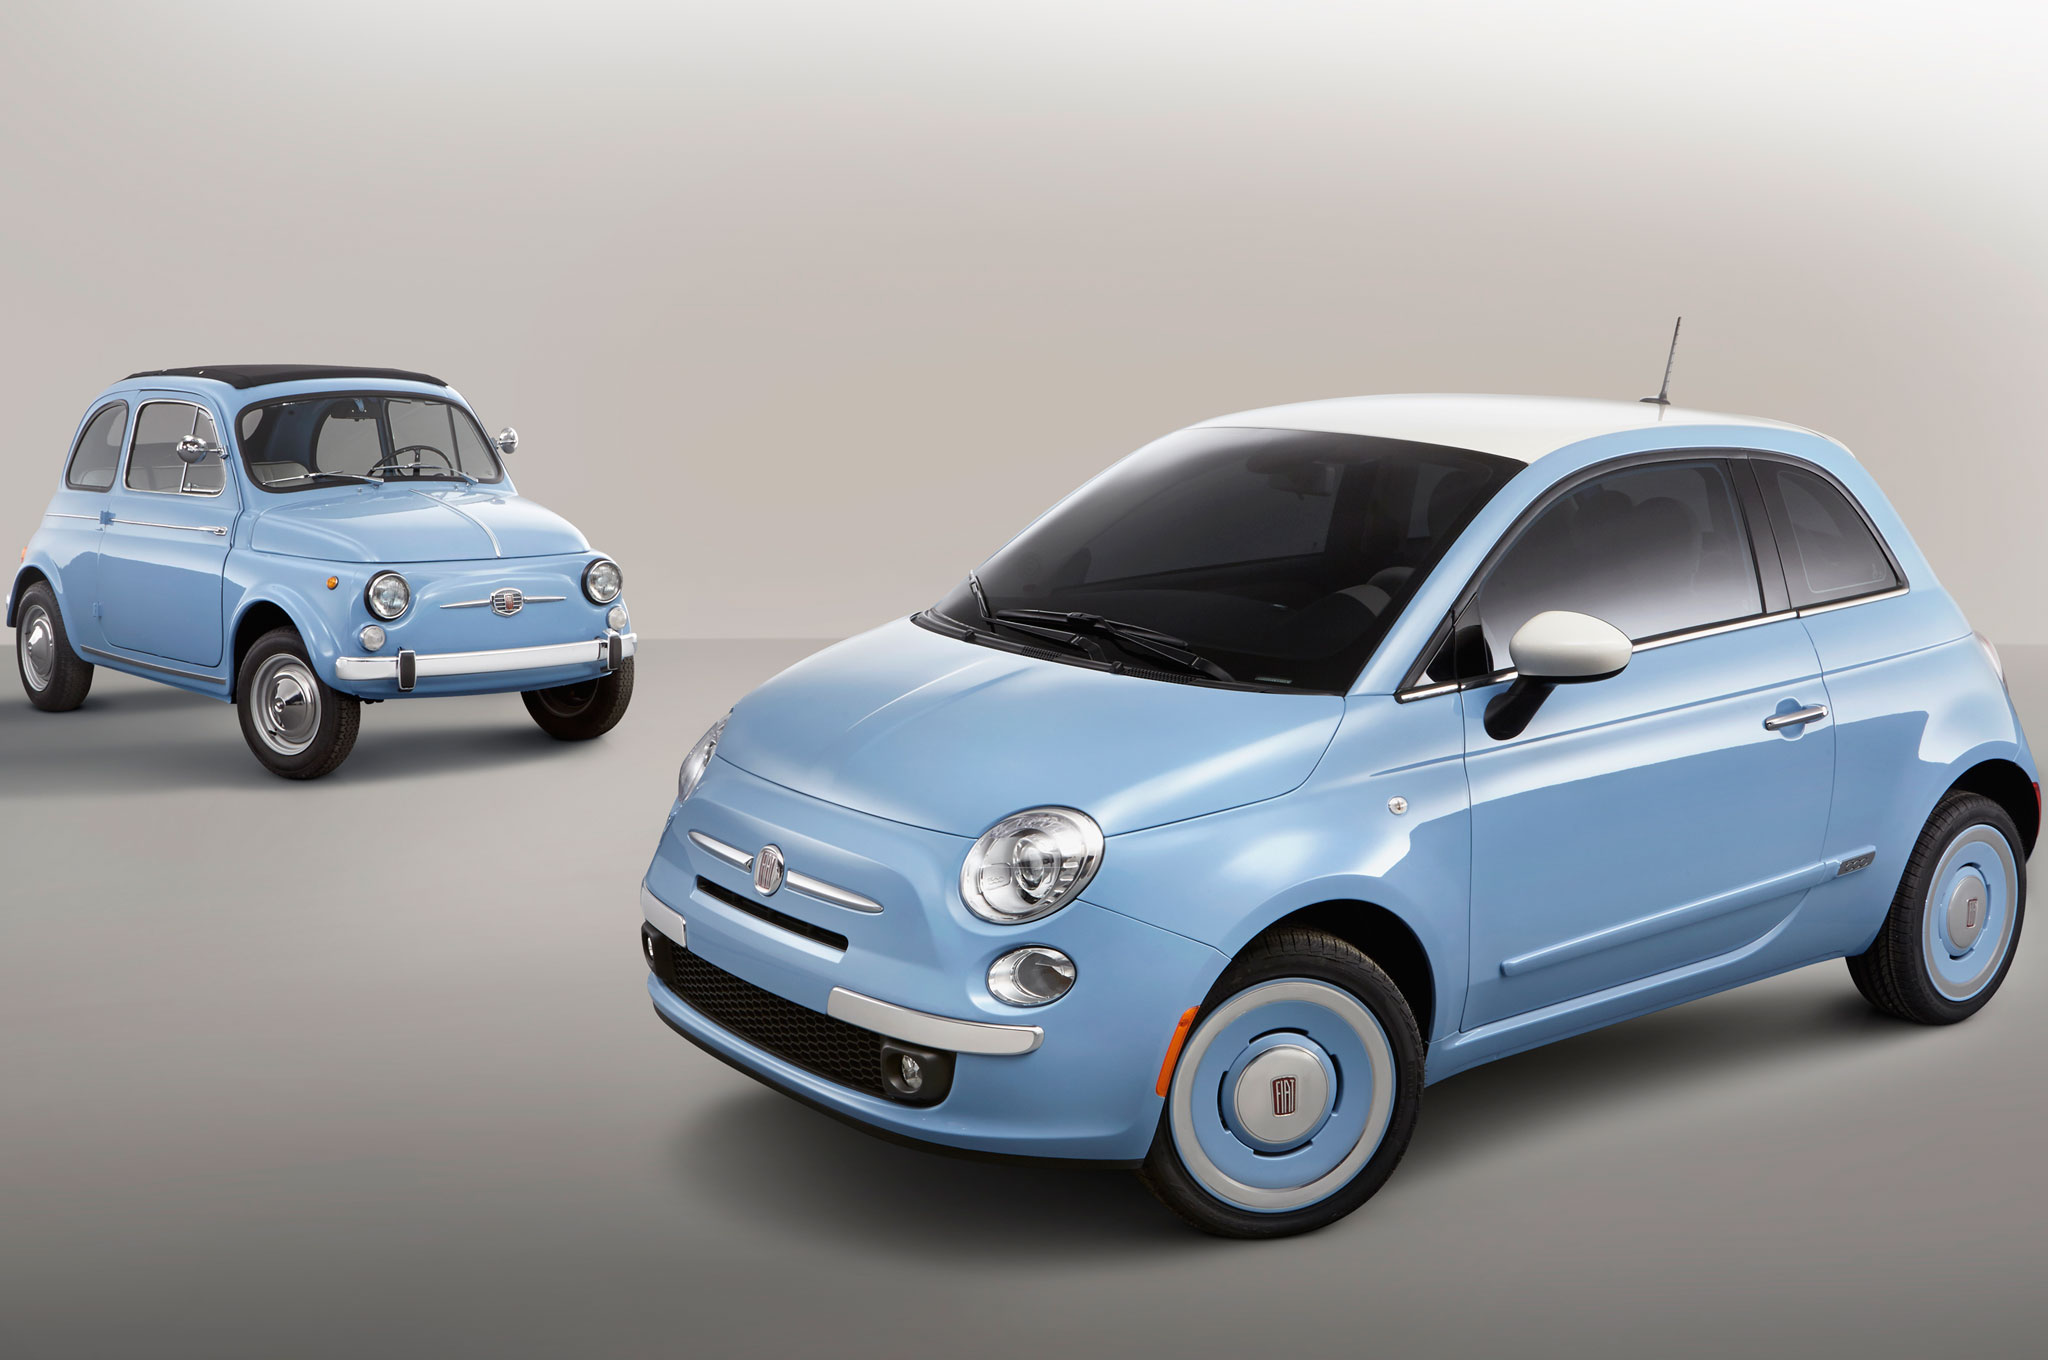 small resolution of 2014 fiat 500 1957 edition celebrates nameplate s 57th anniversary